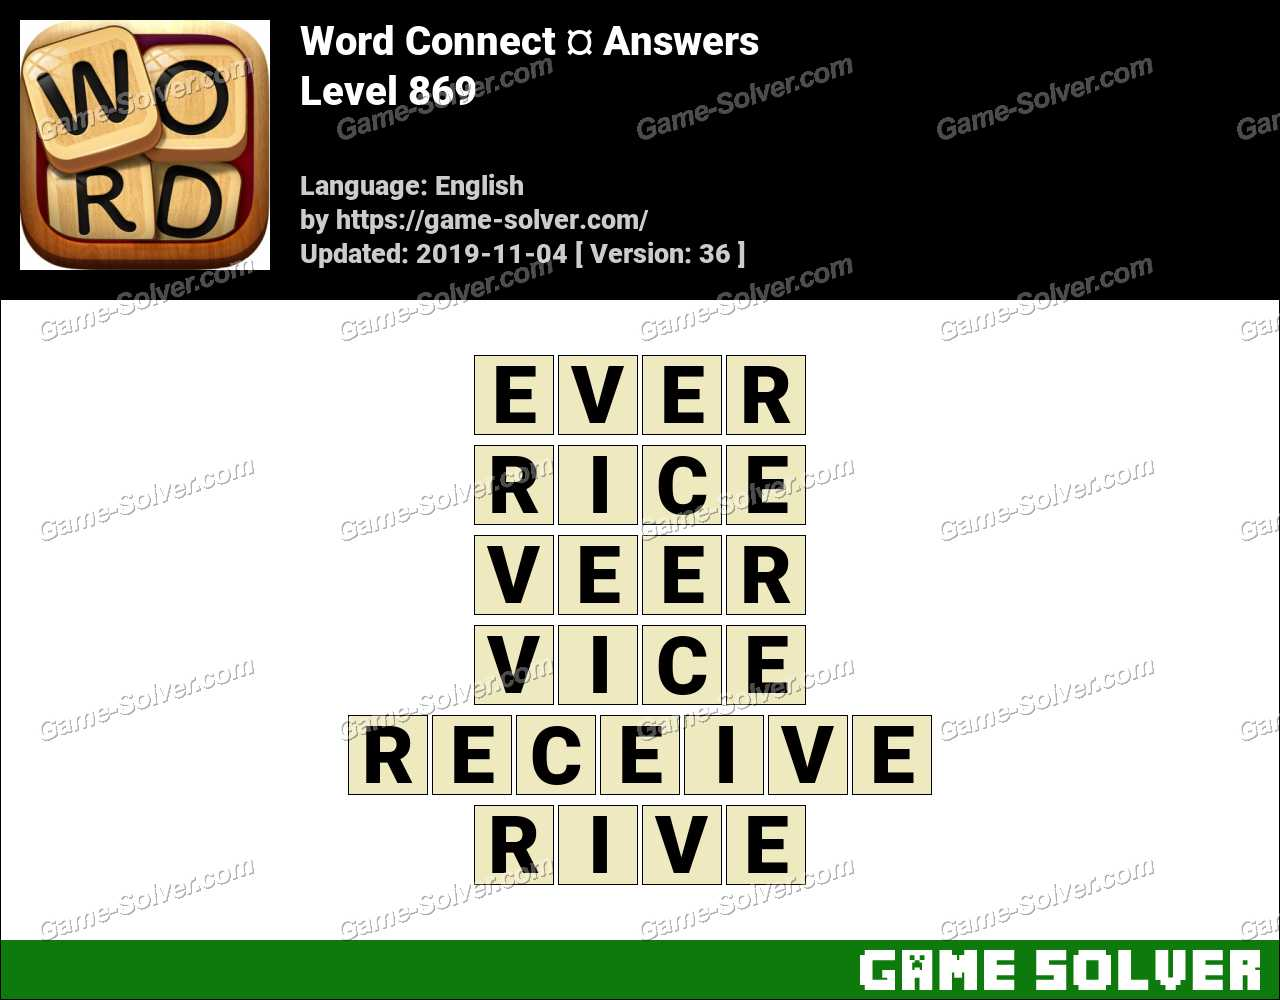 Word Connect Level 869 Answers